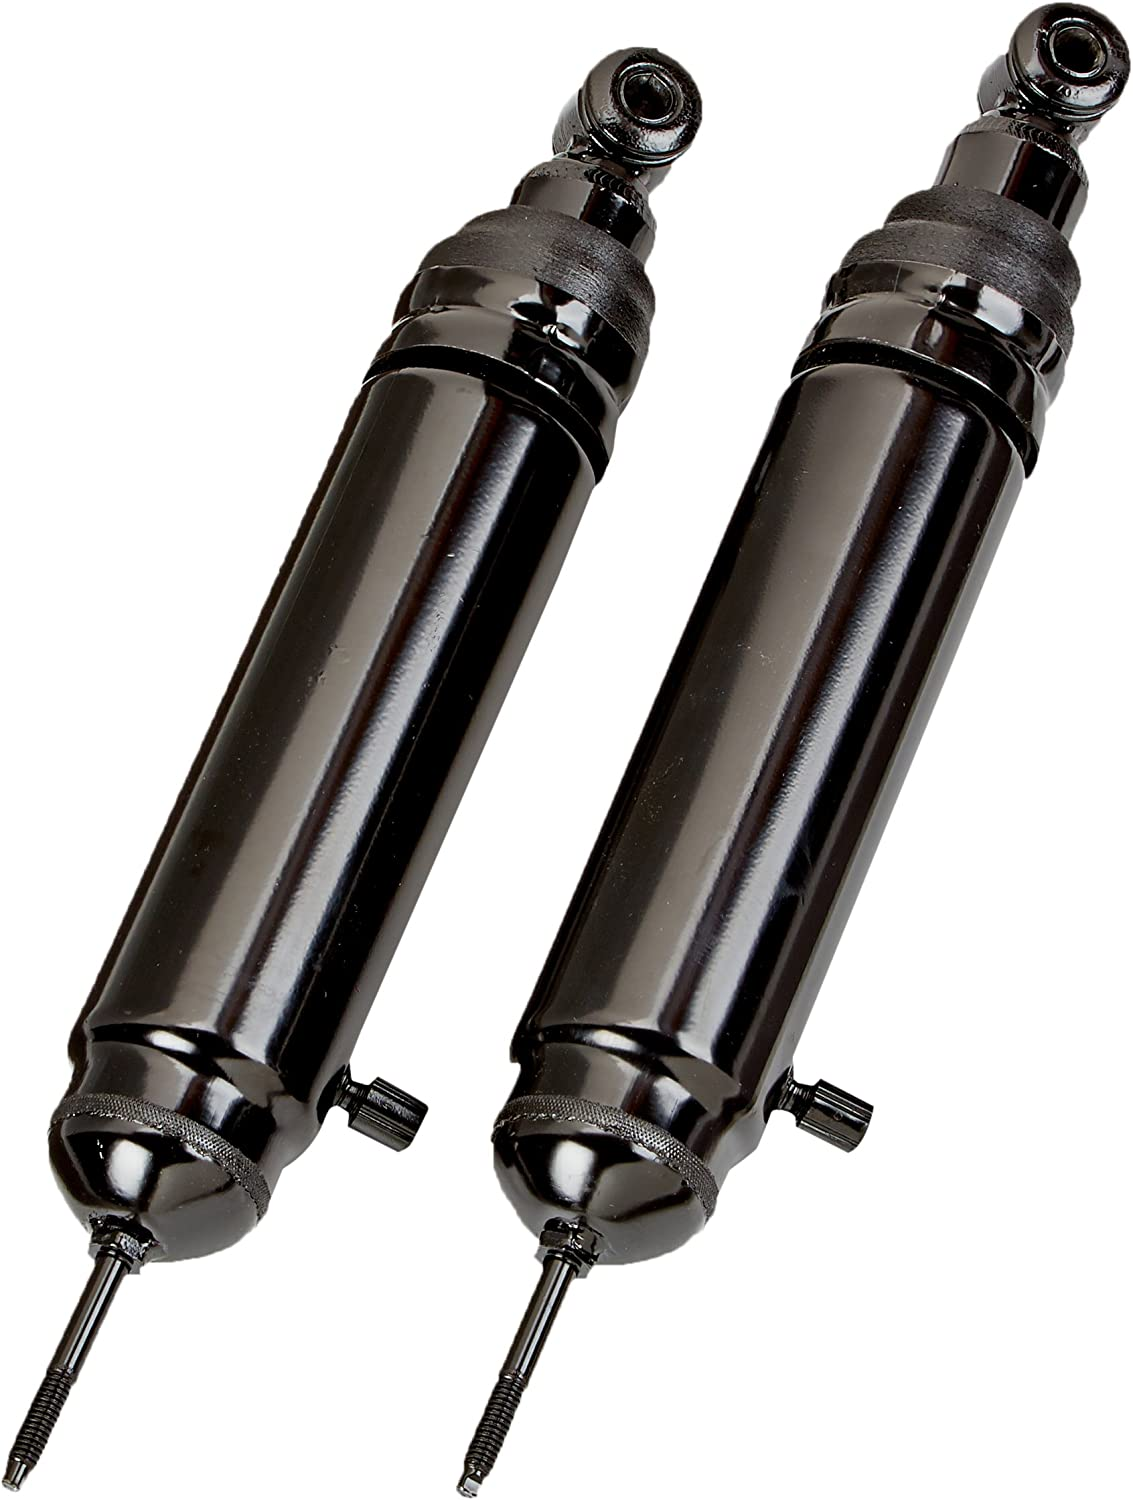 MONROE SHOCKS MA829 MAX-AIR ADJUST S